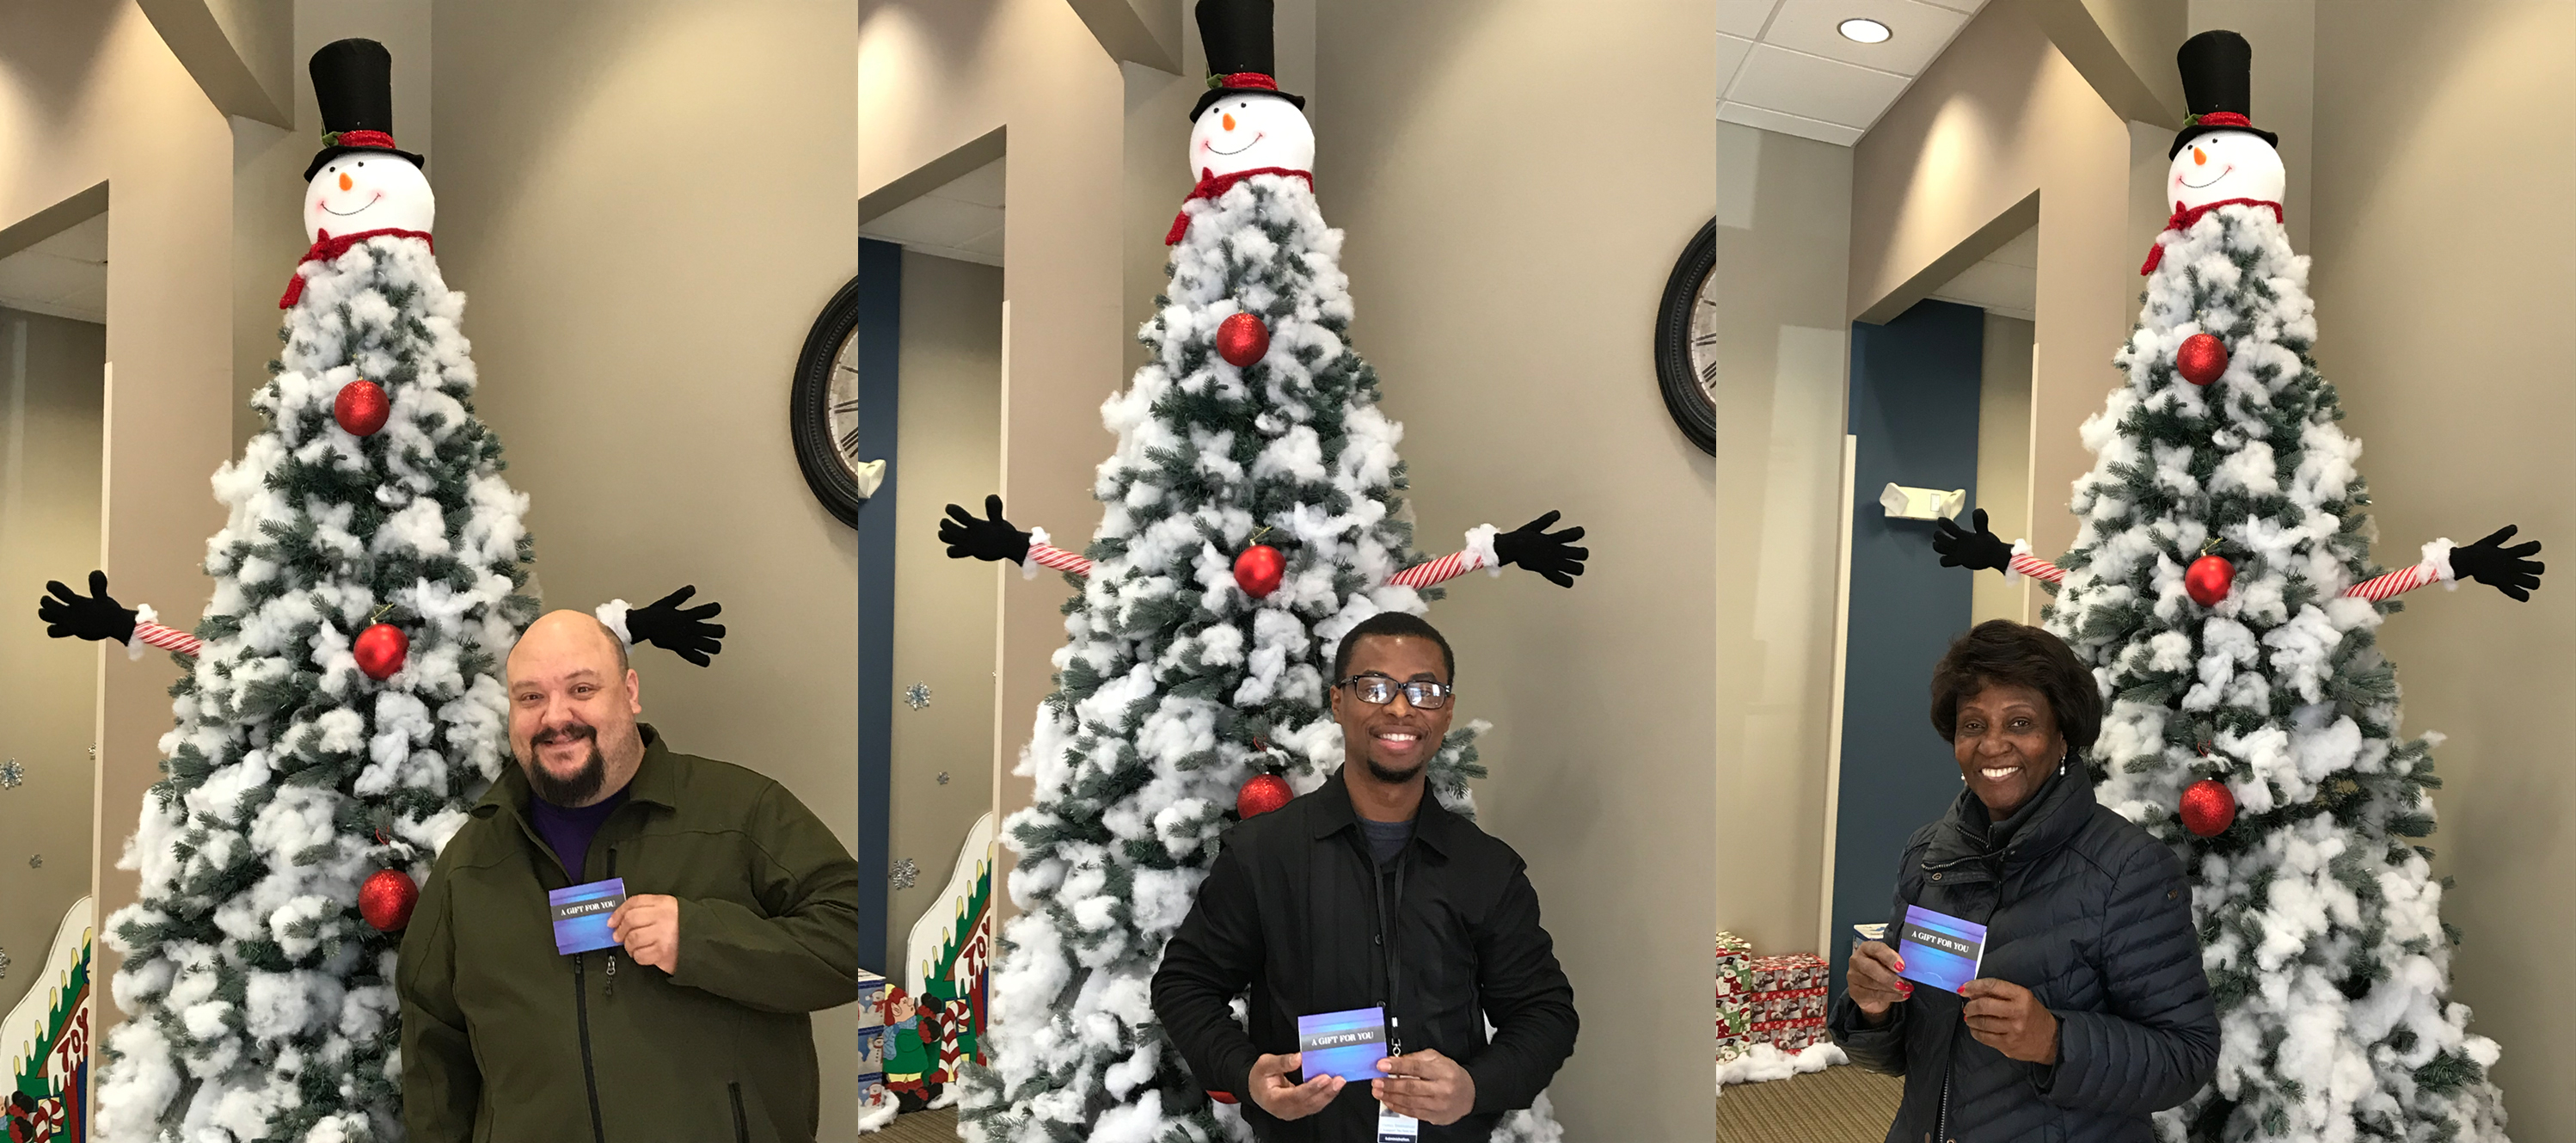 Fighting childhood disease raffle winners in front of Christmas tree